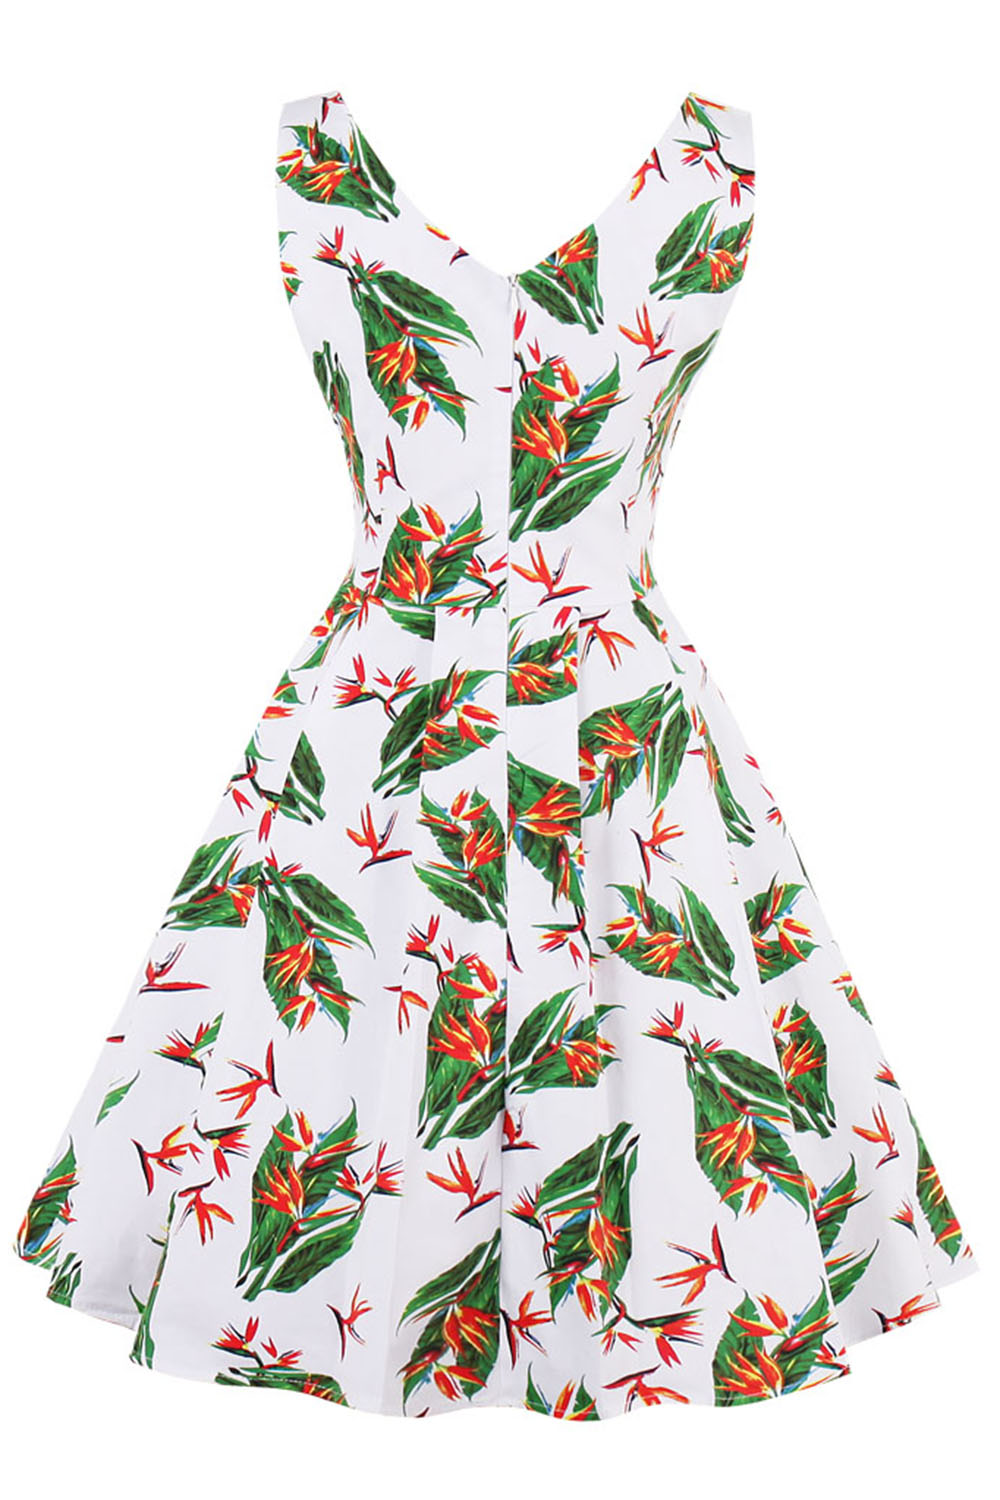 MisShow Vestidos 2018 Autumn Flamingo Printed Woman Vintage Dresses  Sleeveless 4XL Plus Size Party V Neck Zipper Cotton Dresses -in Dresses  from Women s ... e706f86a5a88